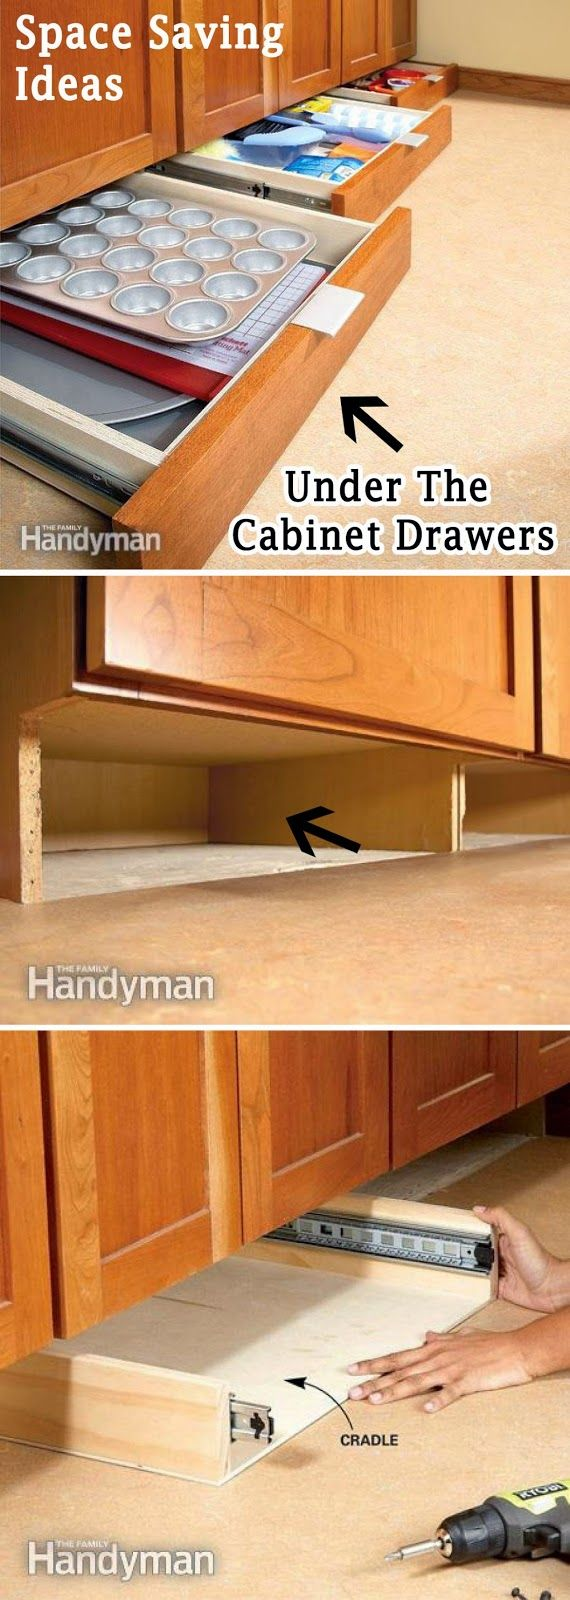 best clever ideas u organizing images on pinterest apartments